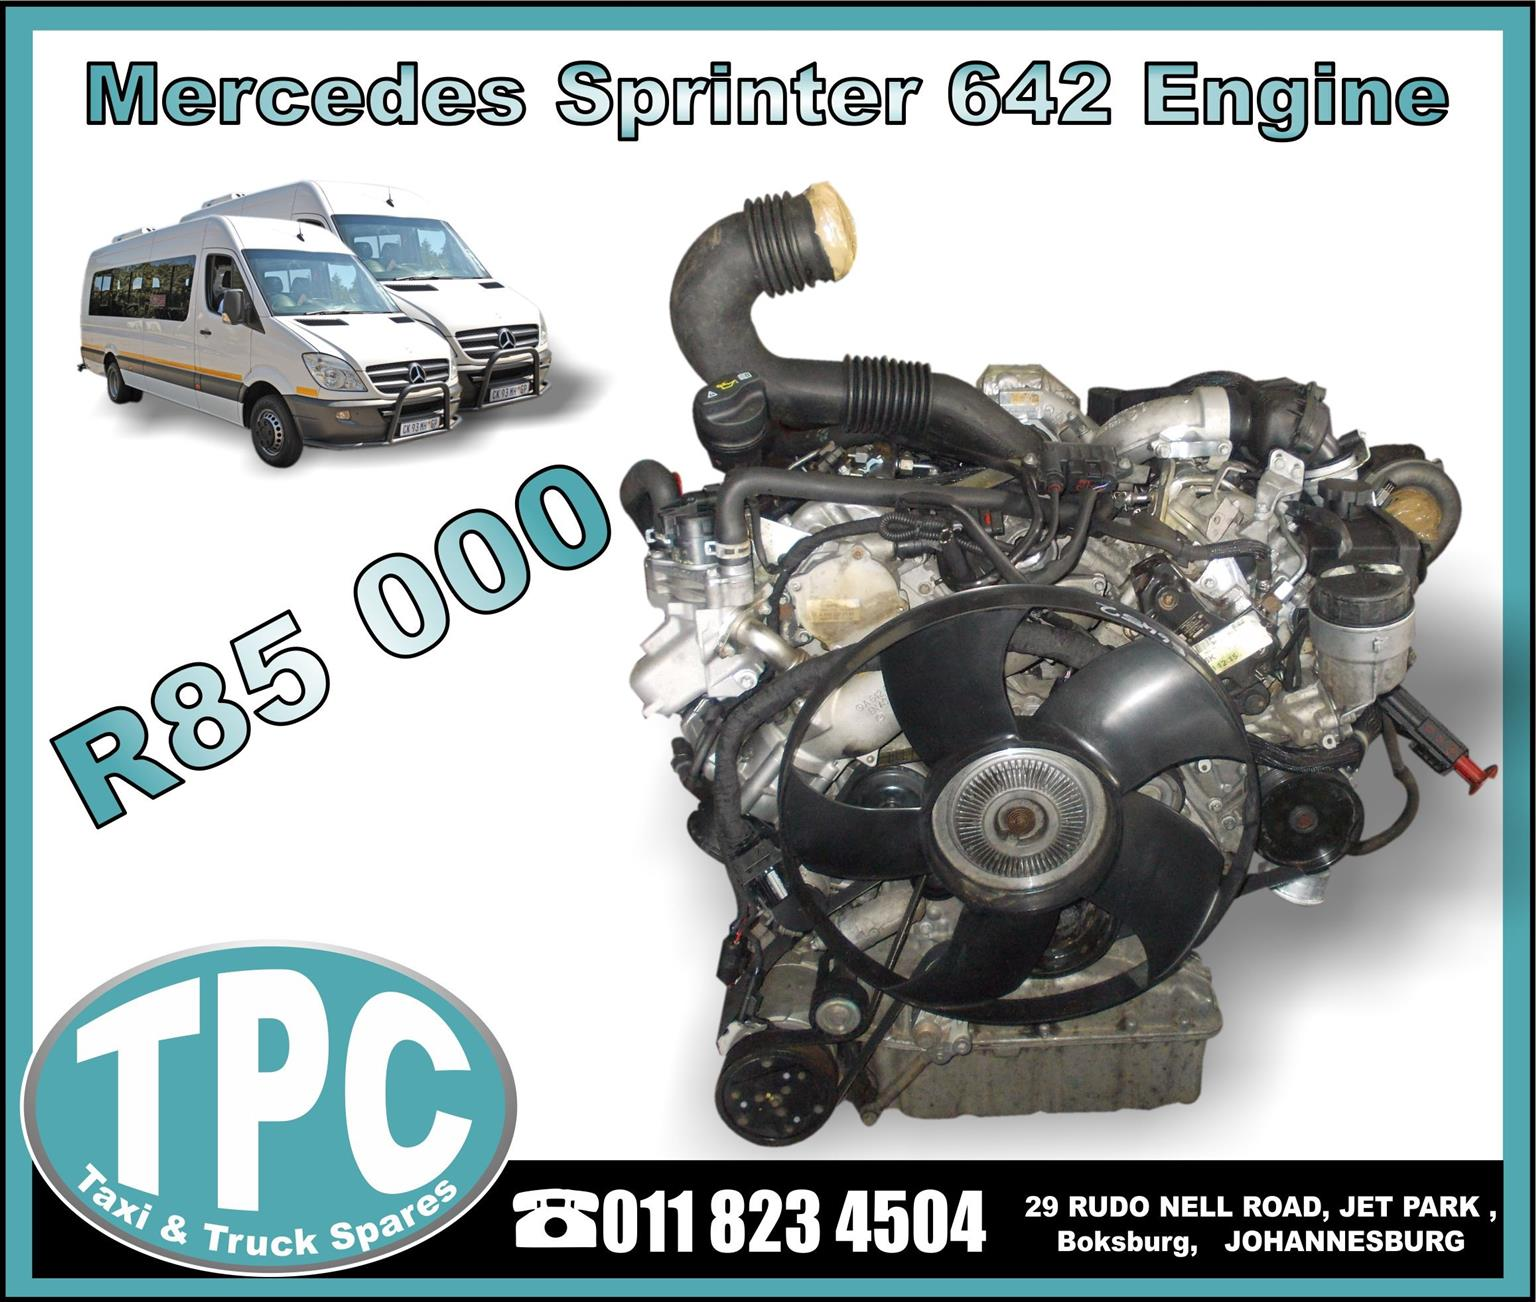 Mercedes Sprinter 642 Engine - USED - New And Used Replacement Parts ...